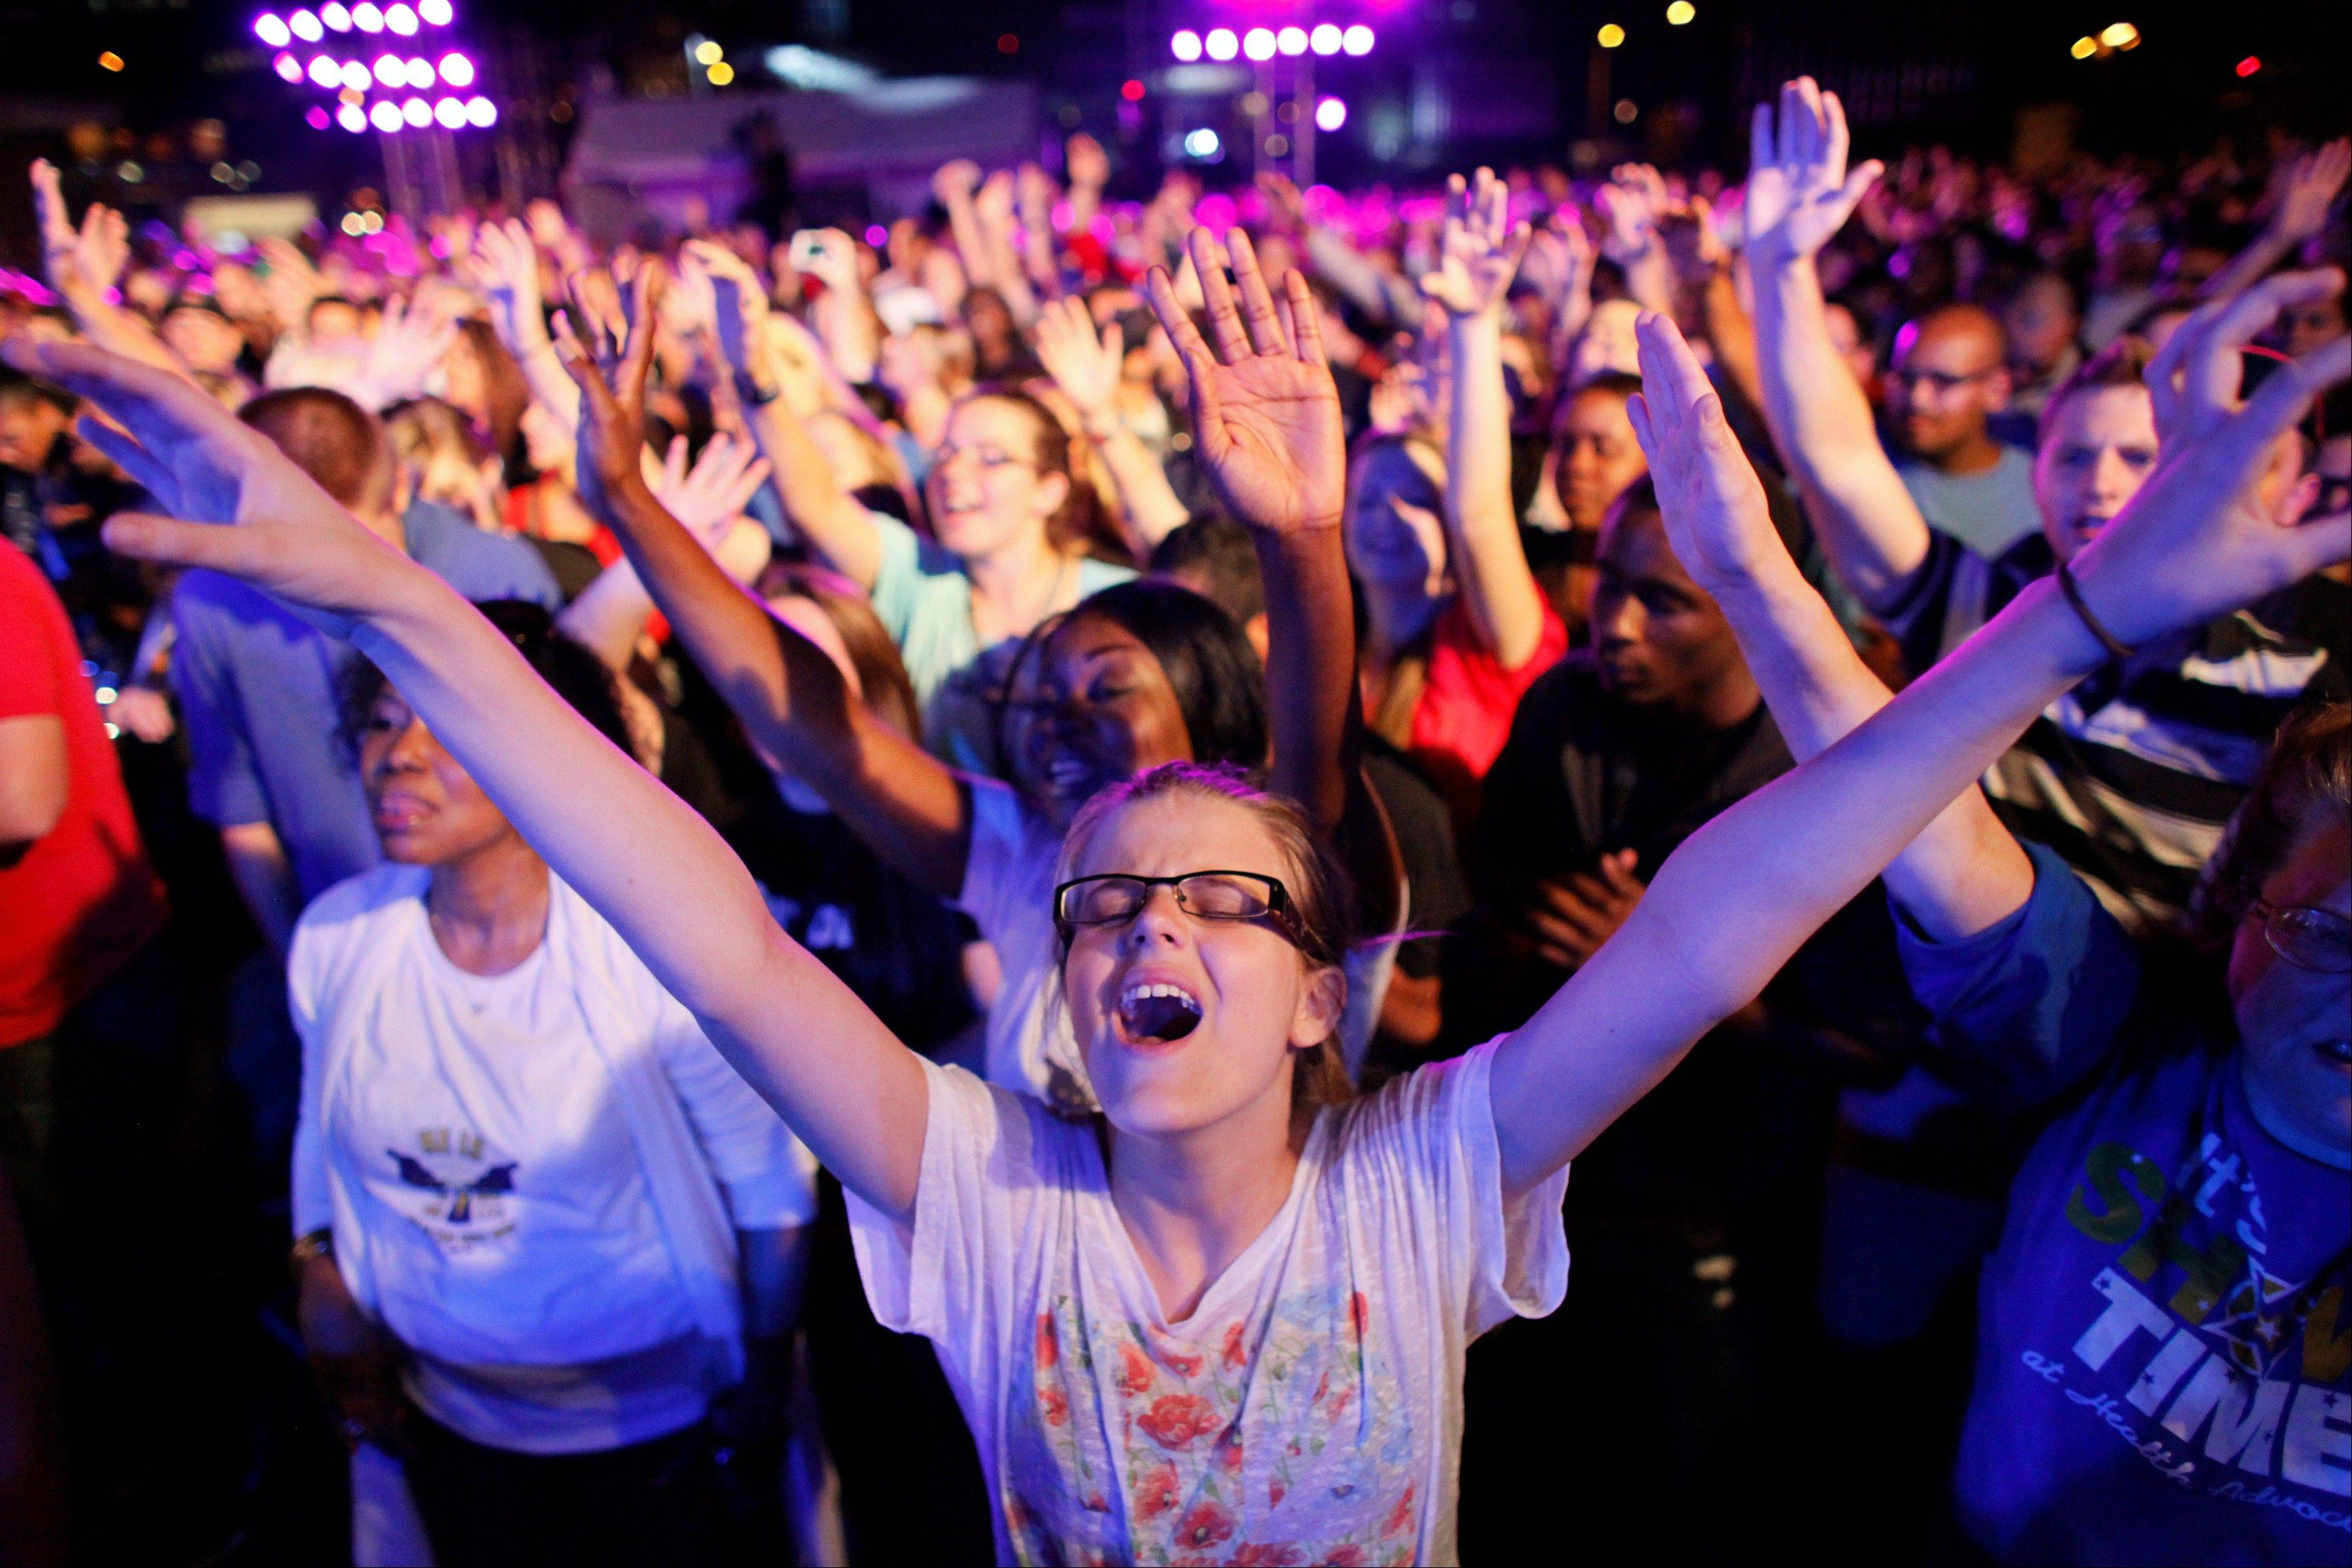 Associated PressDharma Bohall, 13, extends her arms in prayer during the America for Jesus prayer rally in Philadelphia.